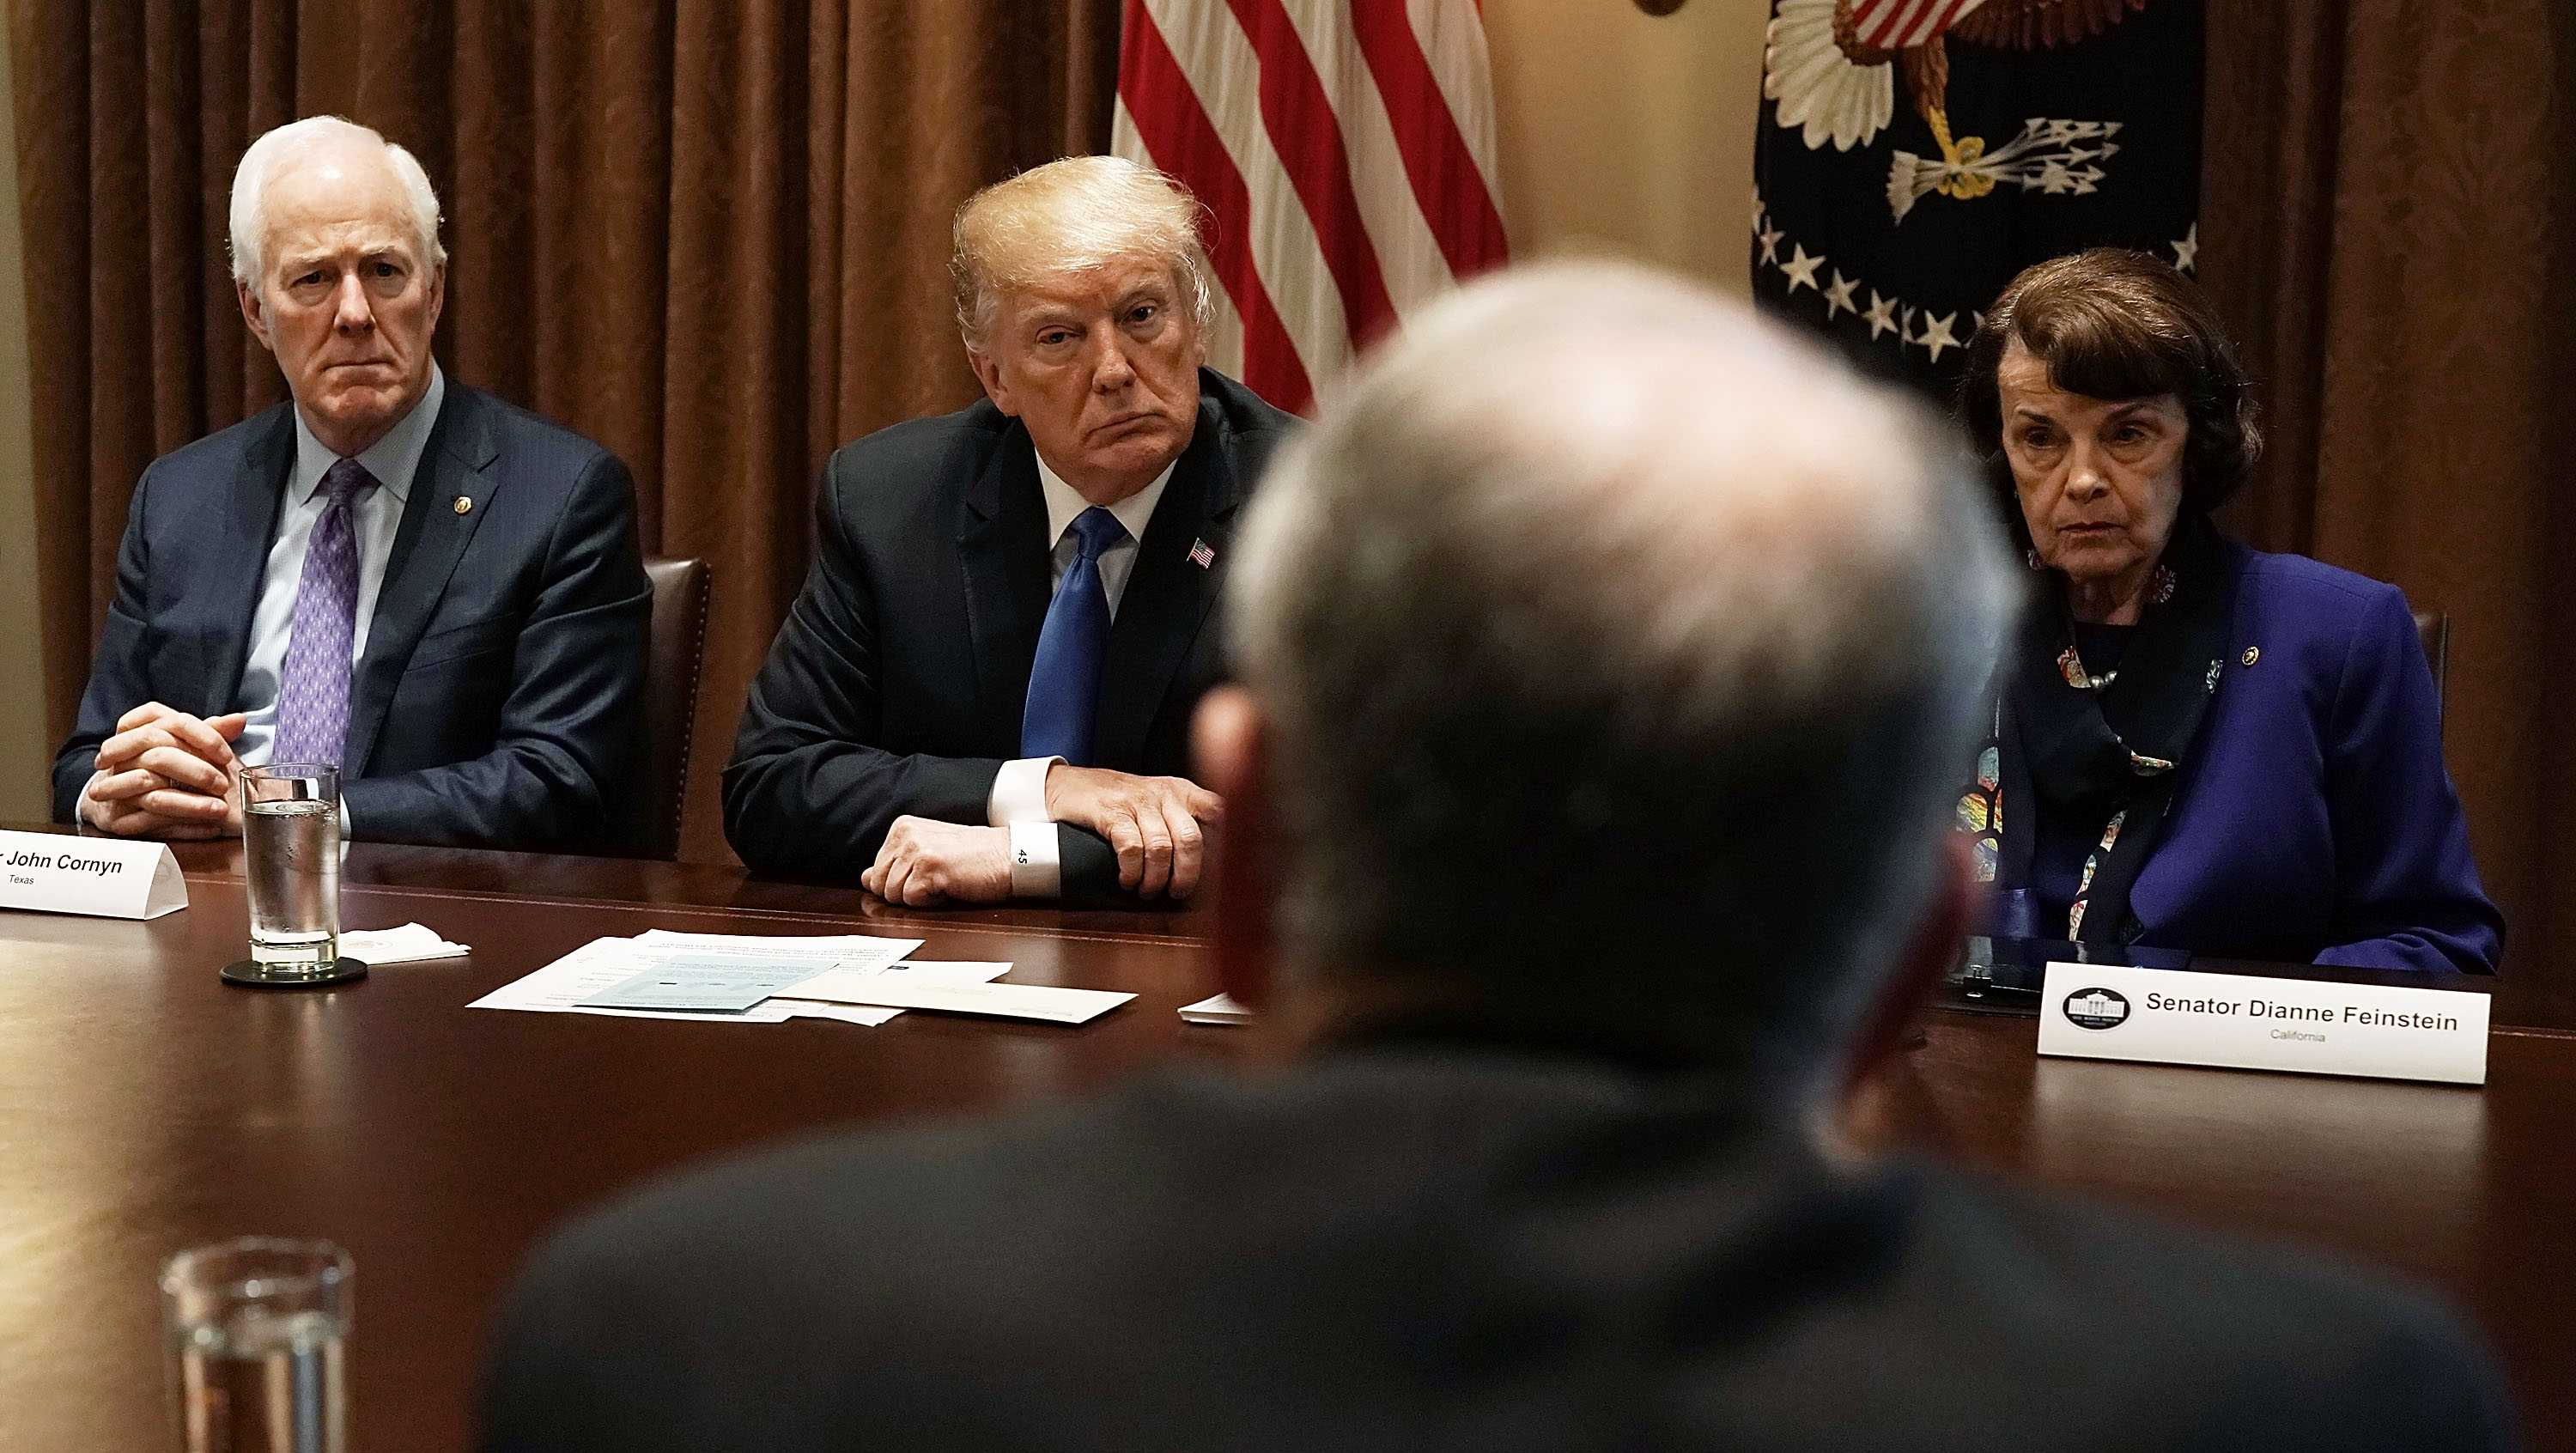 U.S. President Donald Trump (2nd L), Senate Majority Whip Sen. John Cornyn (R-TX) (L) and Sen. Dianne Feinstein (D-CA) (R) listen during a meeting with bipartisan members of the Congress at the Cabinet Room of the White House February 28, 2018 in Washington, DC.